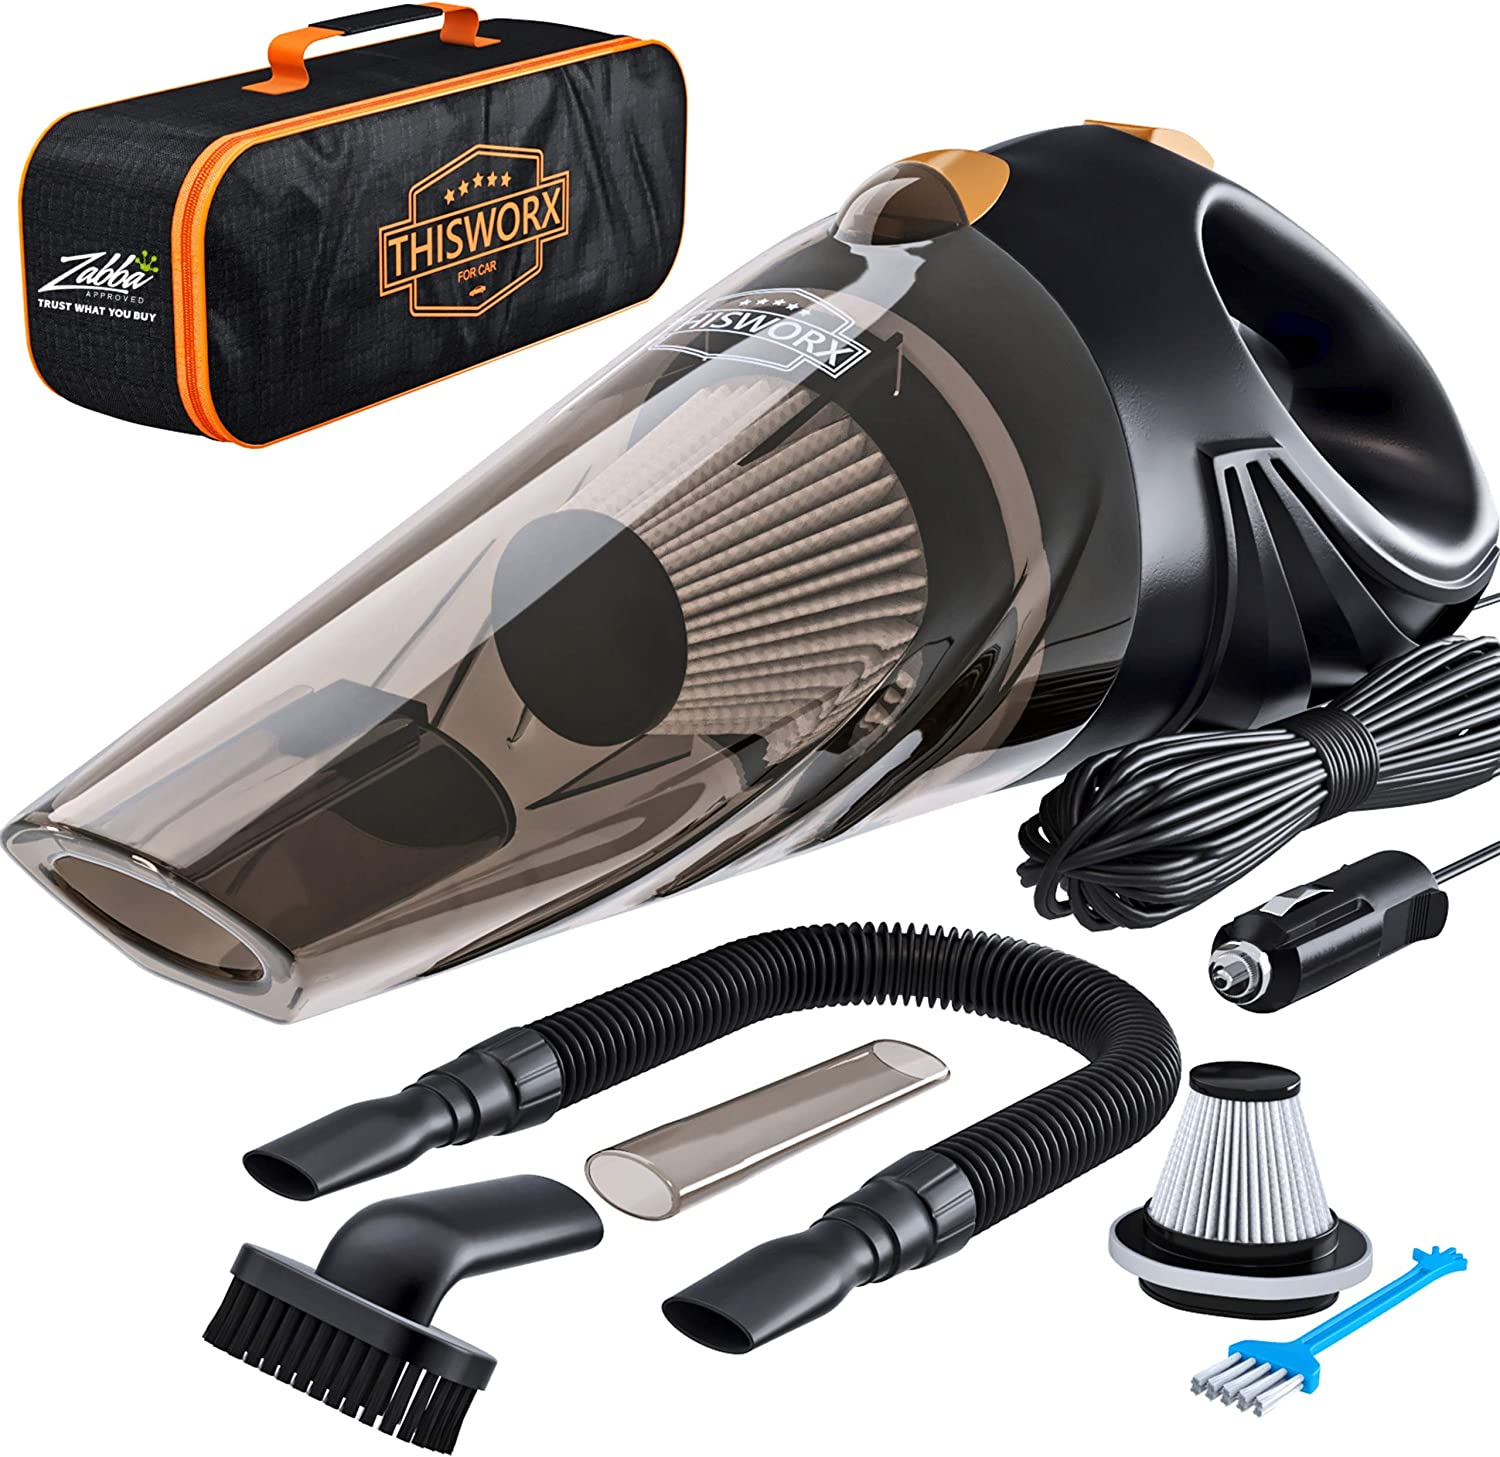 Amazon.com: Portable Car Vacuum Cleaner: High Power Corded Handheld Vacuum  w/ 16 foot cable - 12V - Best Car & Auto Accessories Kit for Detailing and  Cleaning Car Interior: Automotive